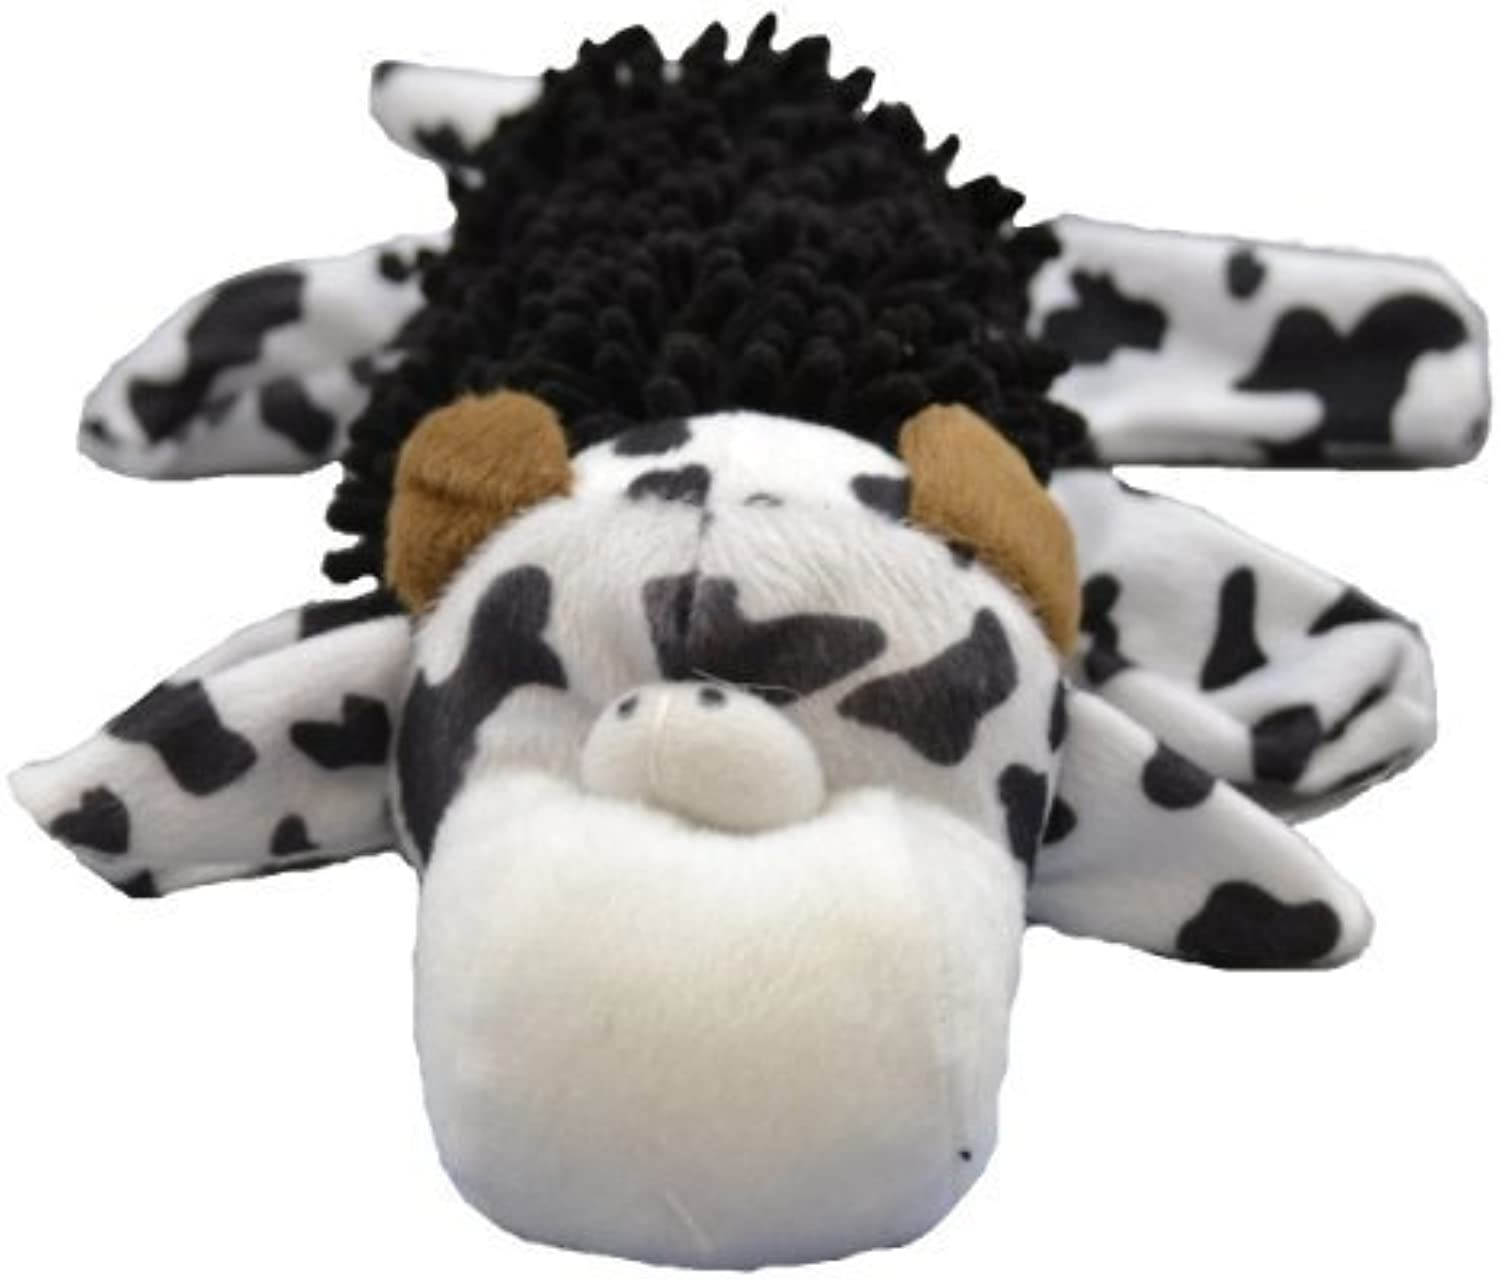 Amazing Pet Products Bottle Shaggy Pet Squeak Toy, Cow by Amazing Pet Products